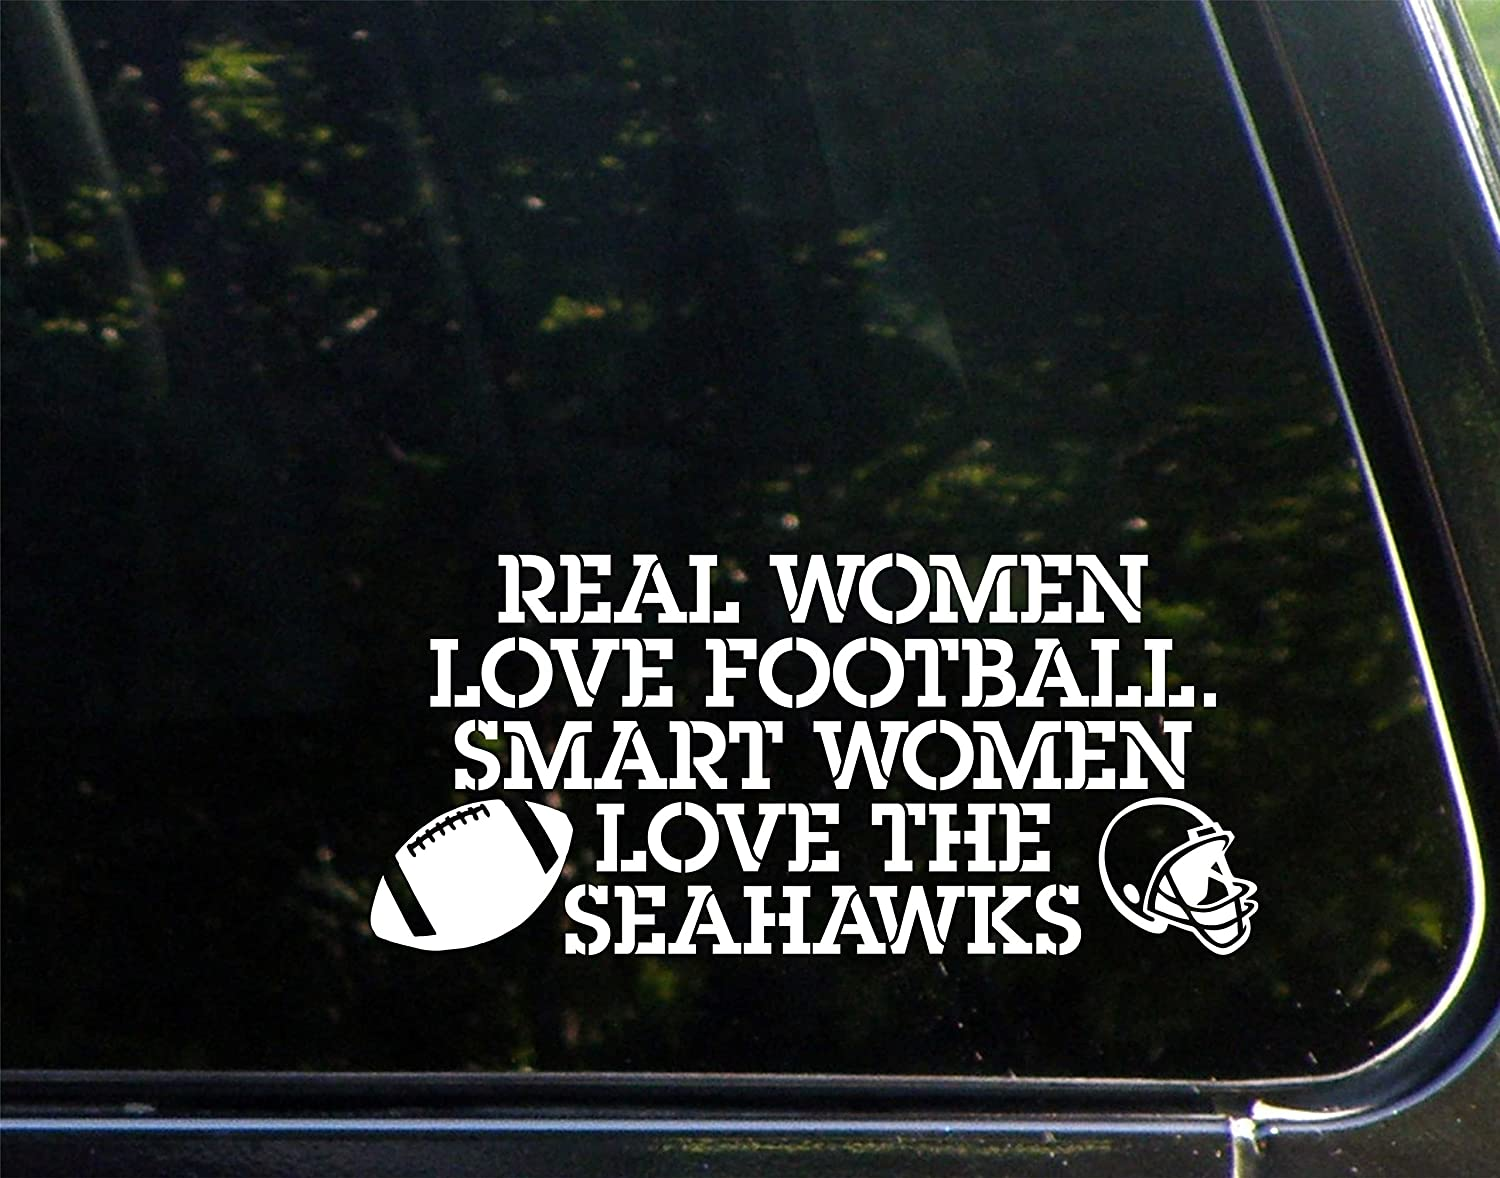 Amazon real women love football smart women love the amazon real women love football smart women love the seahawks 8 x 3 12 vinyl die cut decal bumper sticker for windows cars trucks laptops sciox Image collections